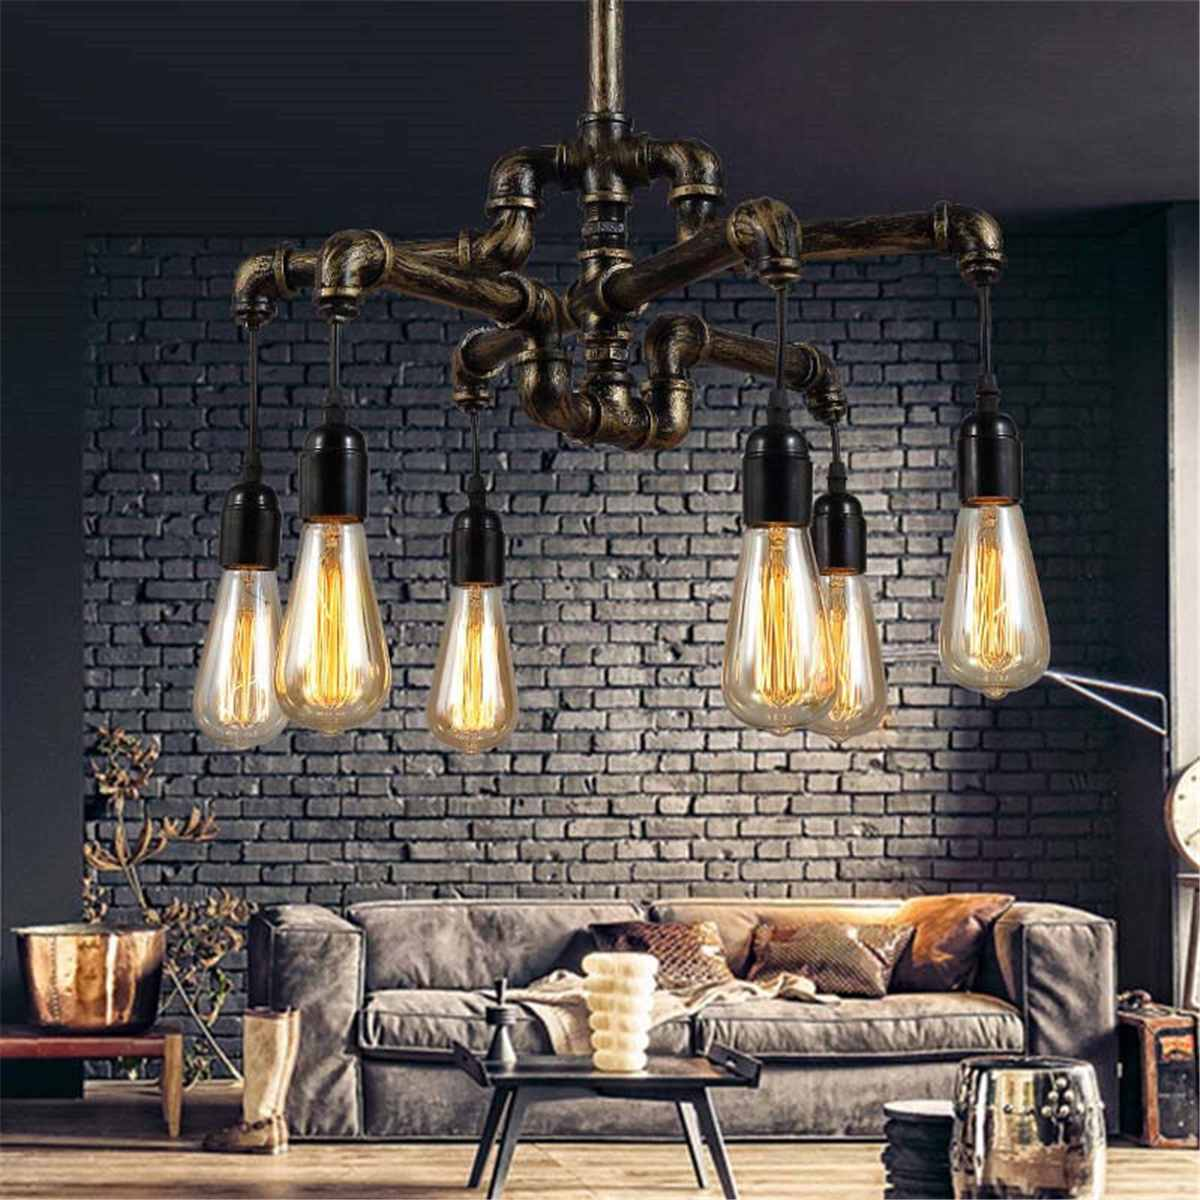 Vintage Loft Style Vintage Industrial Lamp With 4/6 Edison Lights Retro Water Pipe Pendant Light Hanglamp for Restaurant CoffeeVintage Loft Style Vintage Industrial Lamp With 4/6 Edison Lights Retro Water Pipe Pendant Light Hanglamp for Restaurant Coffee